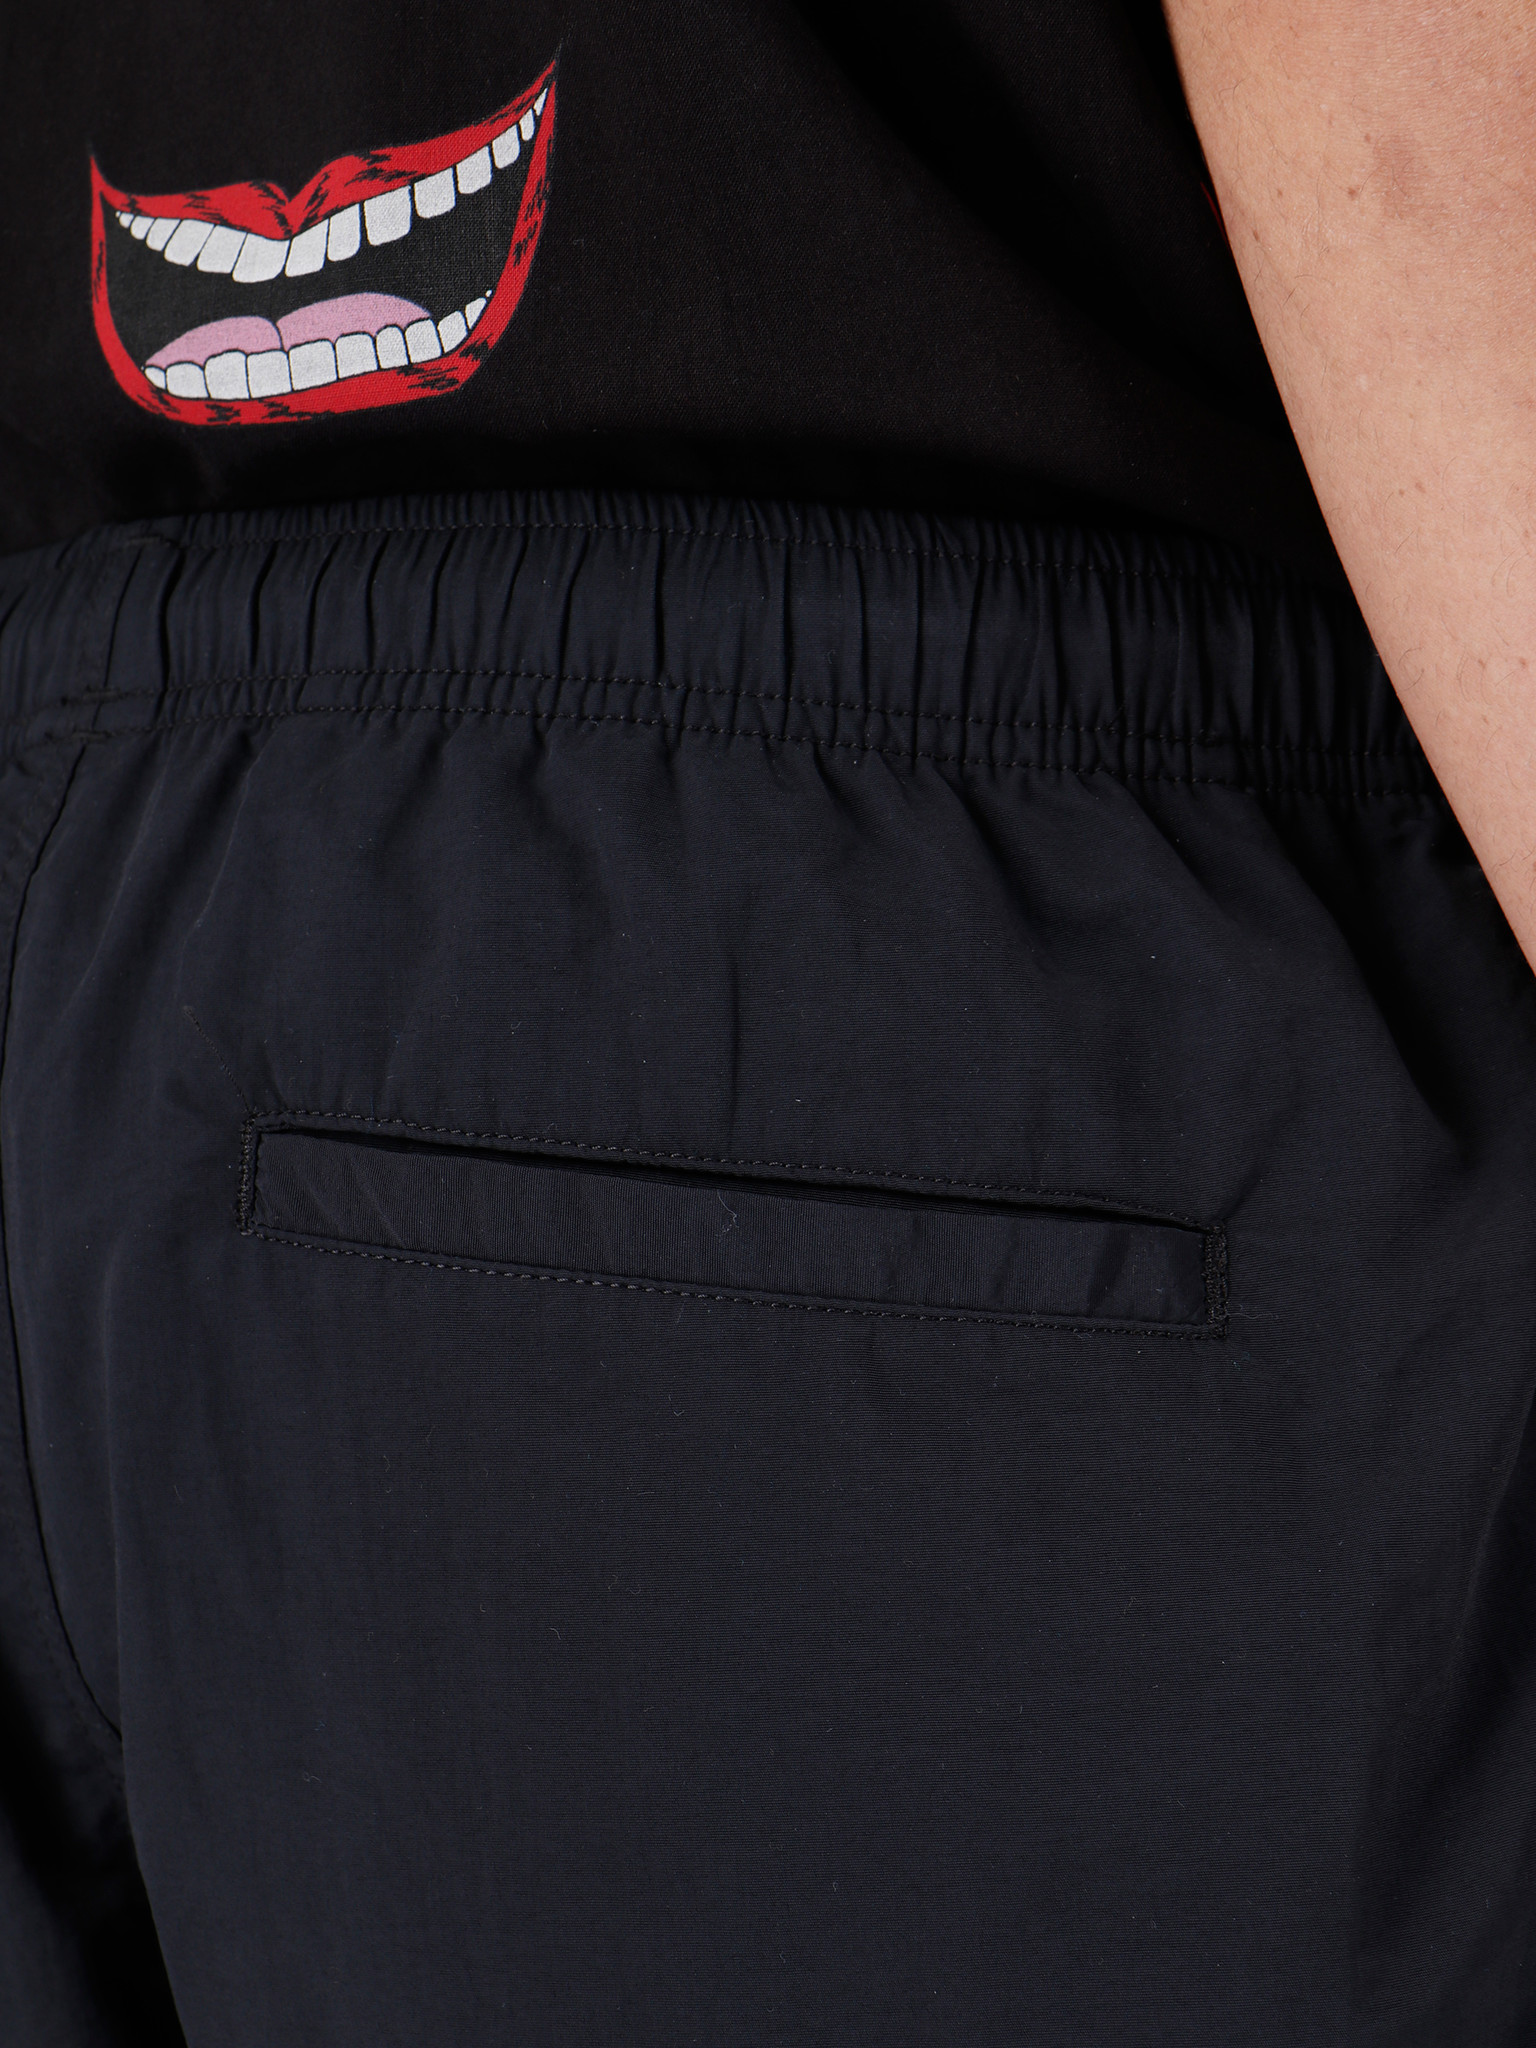 Obey Obey Walkshort Black 172120039-BLK